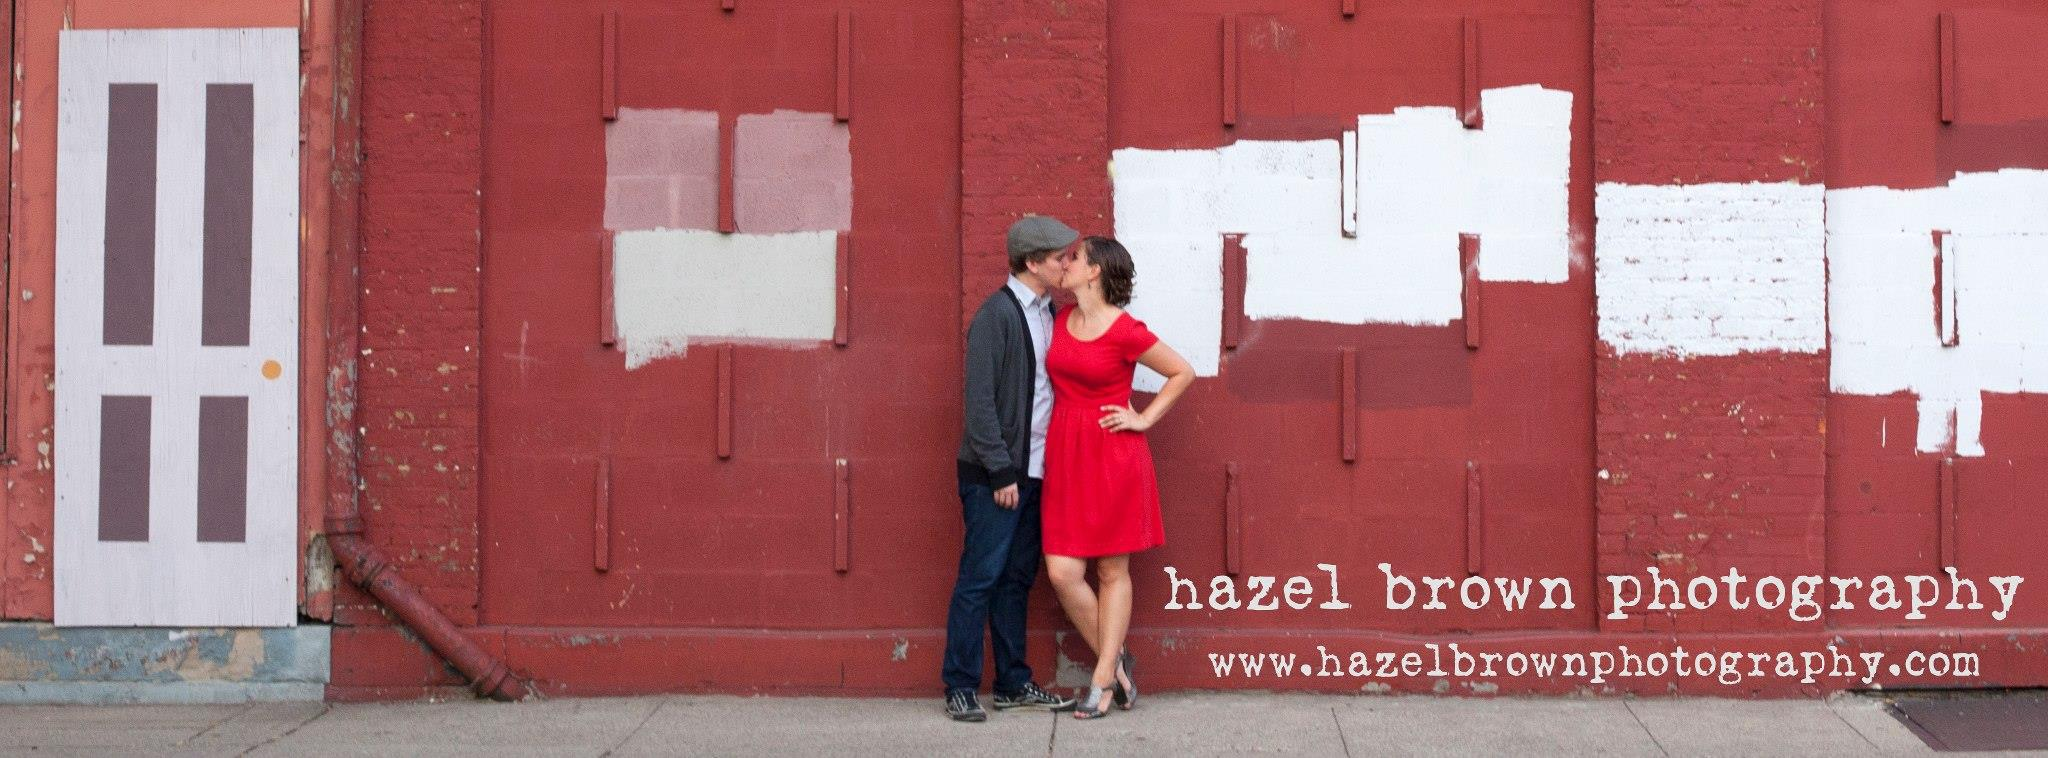 Hazel Brown Photography